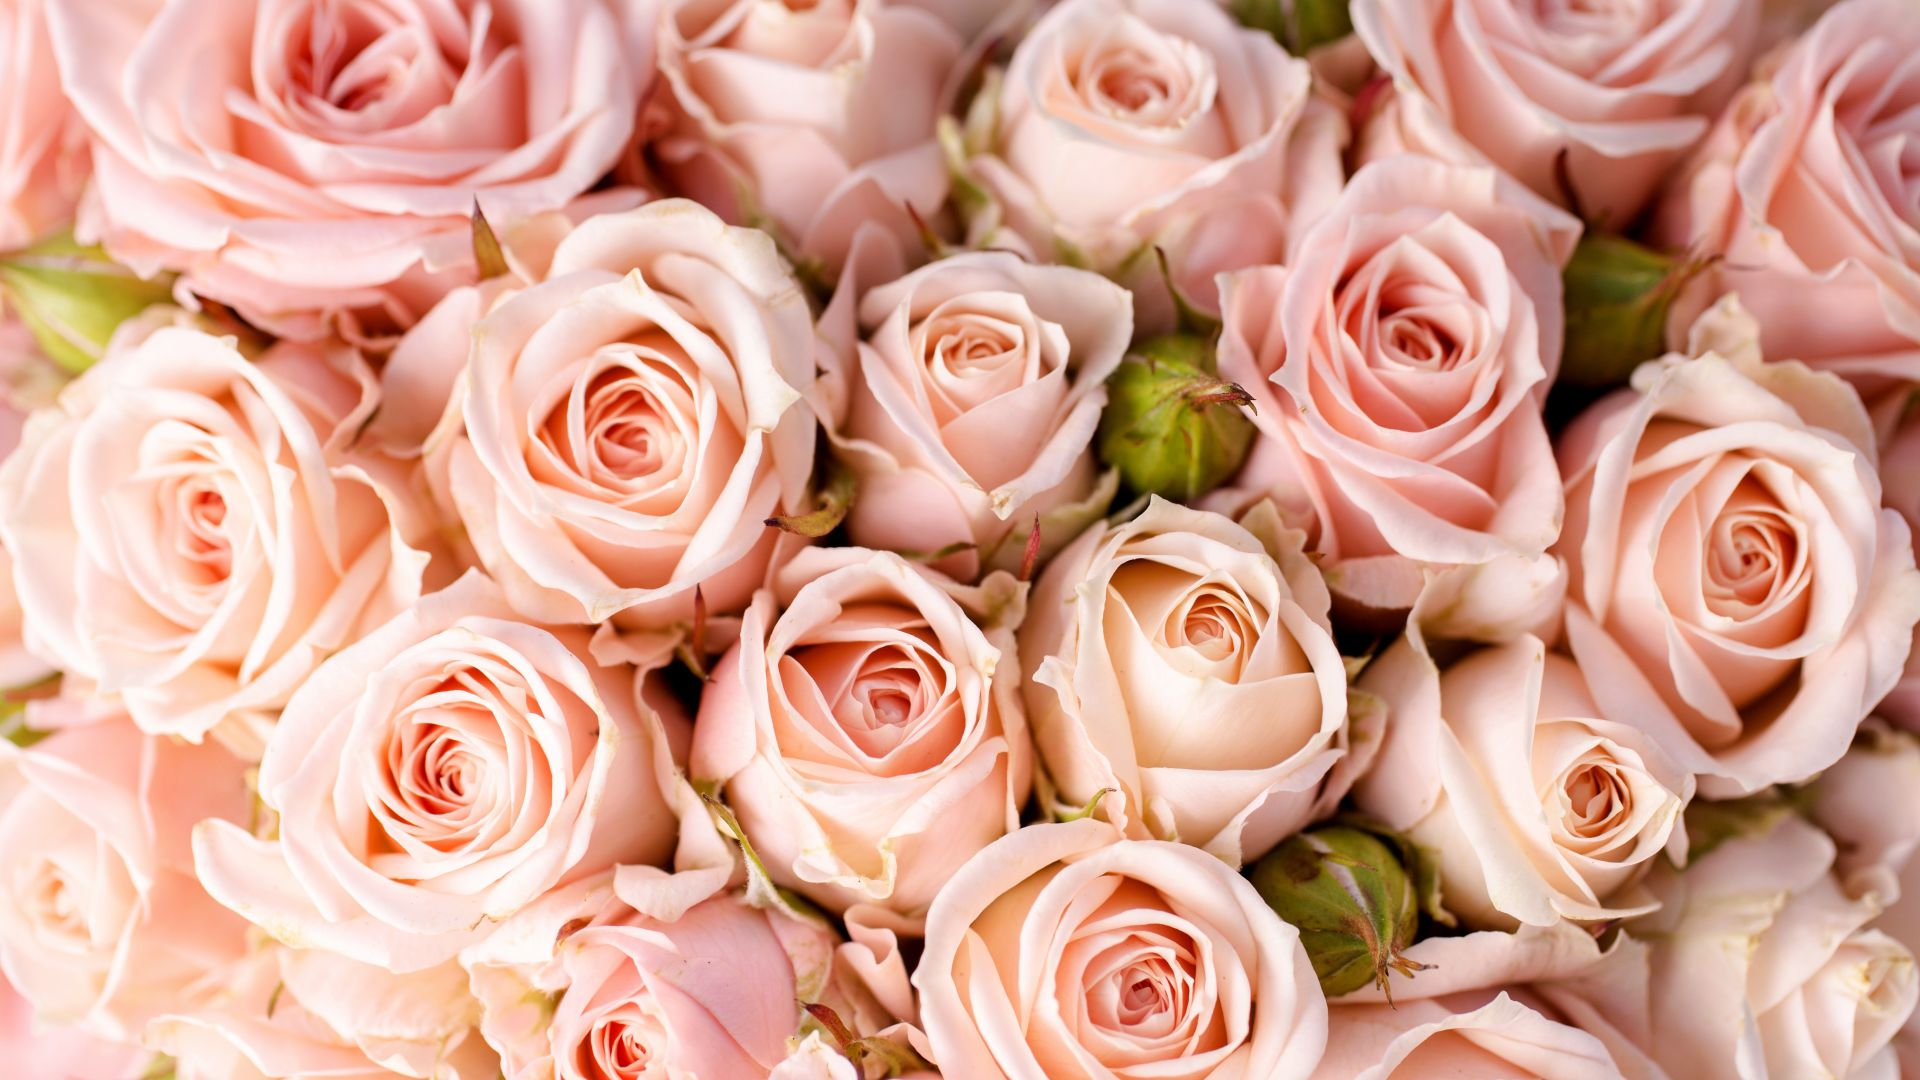 Roses, 5k, 4k wallpaper, 8k, flowers, pink (horizontal)